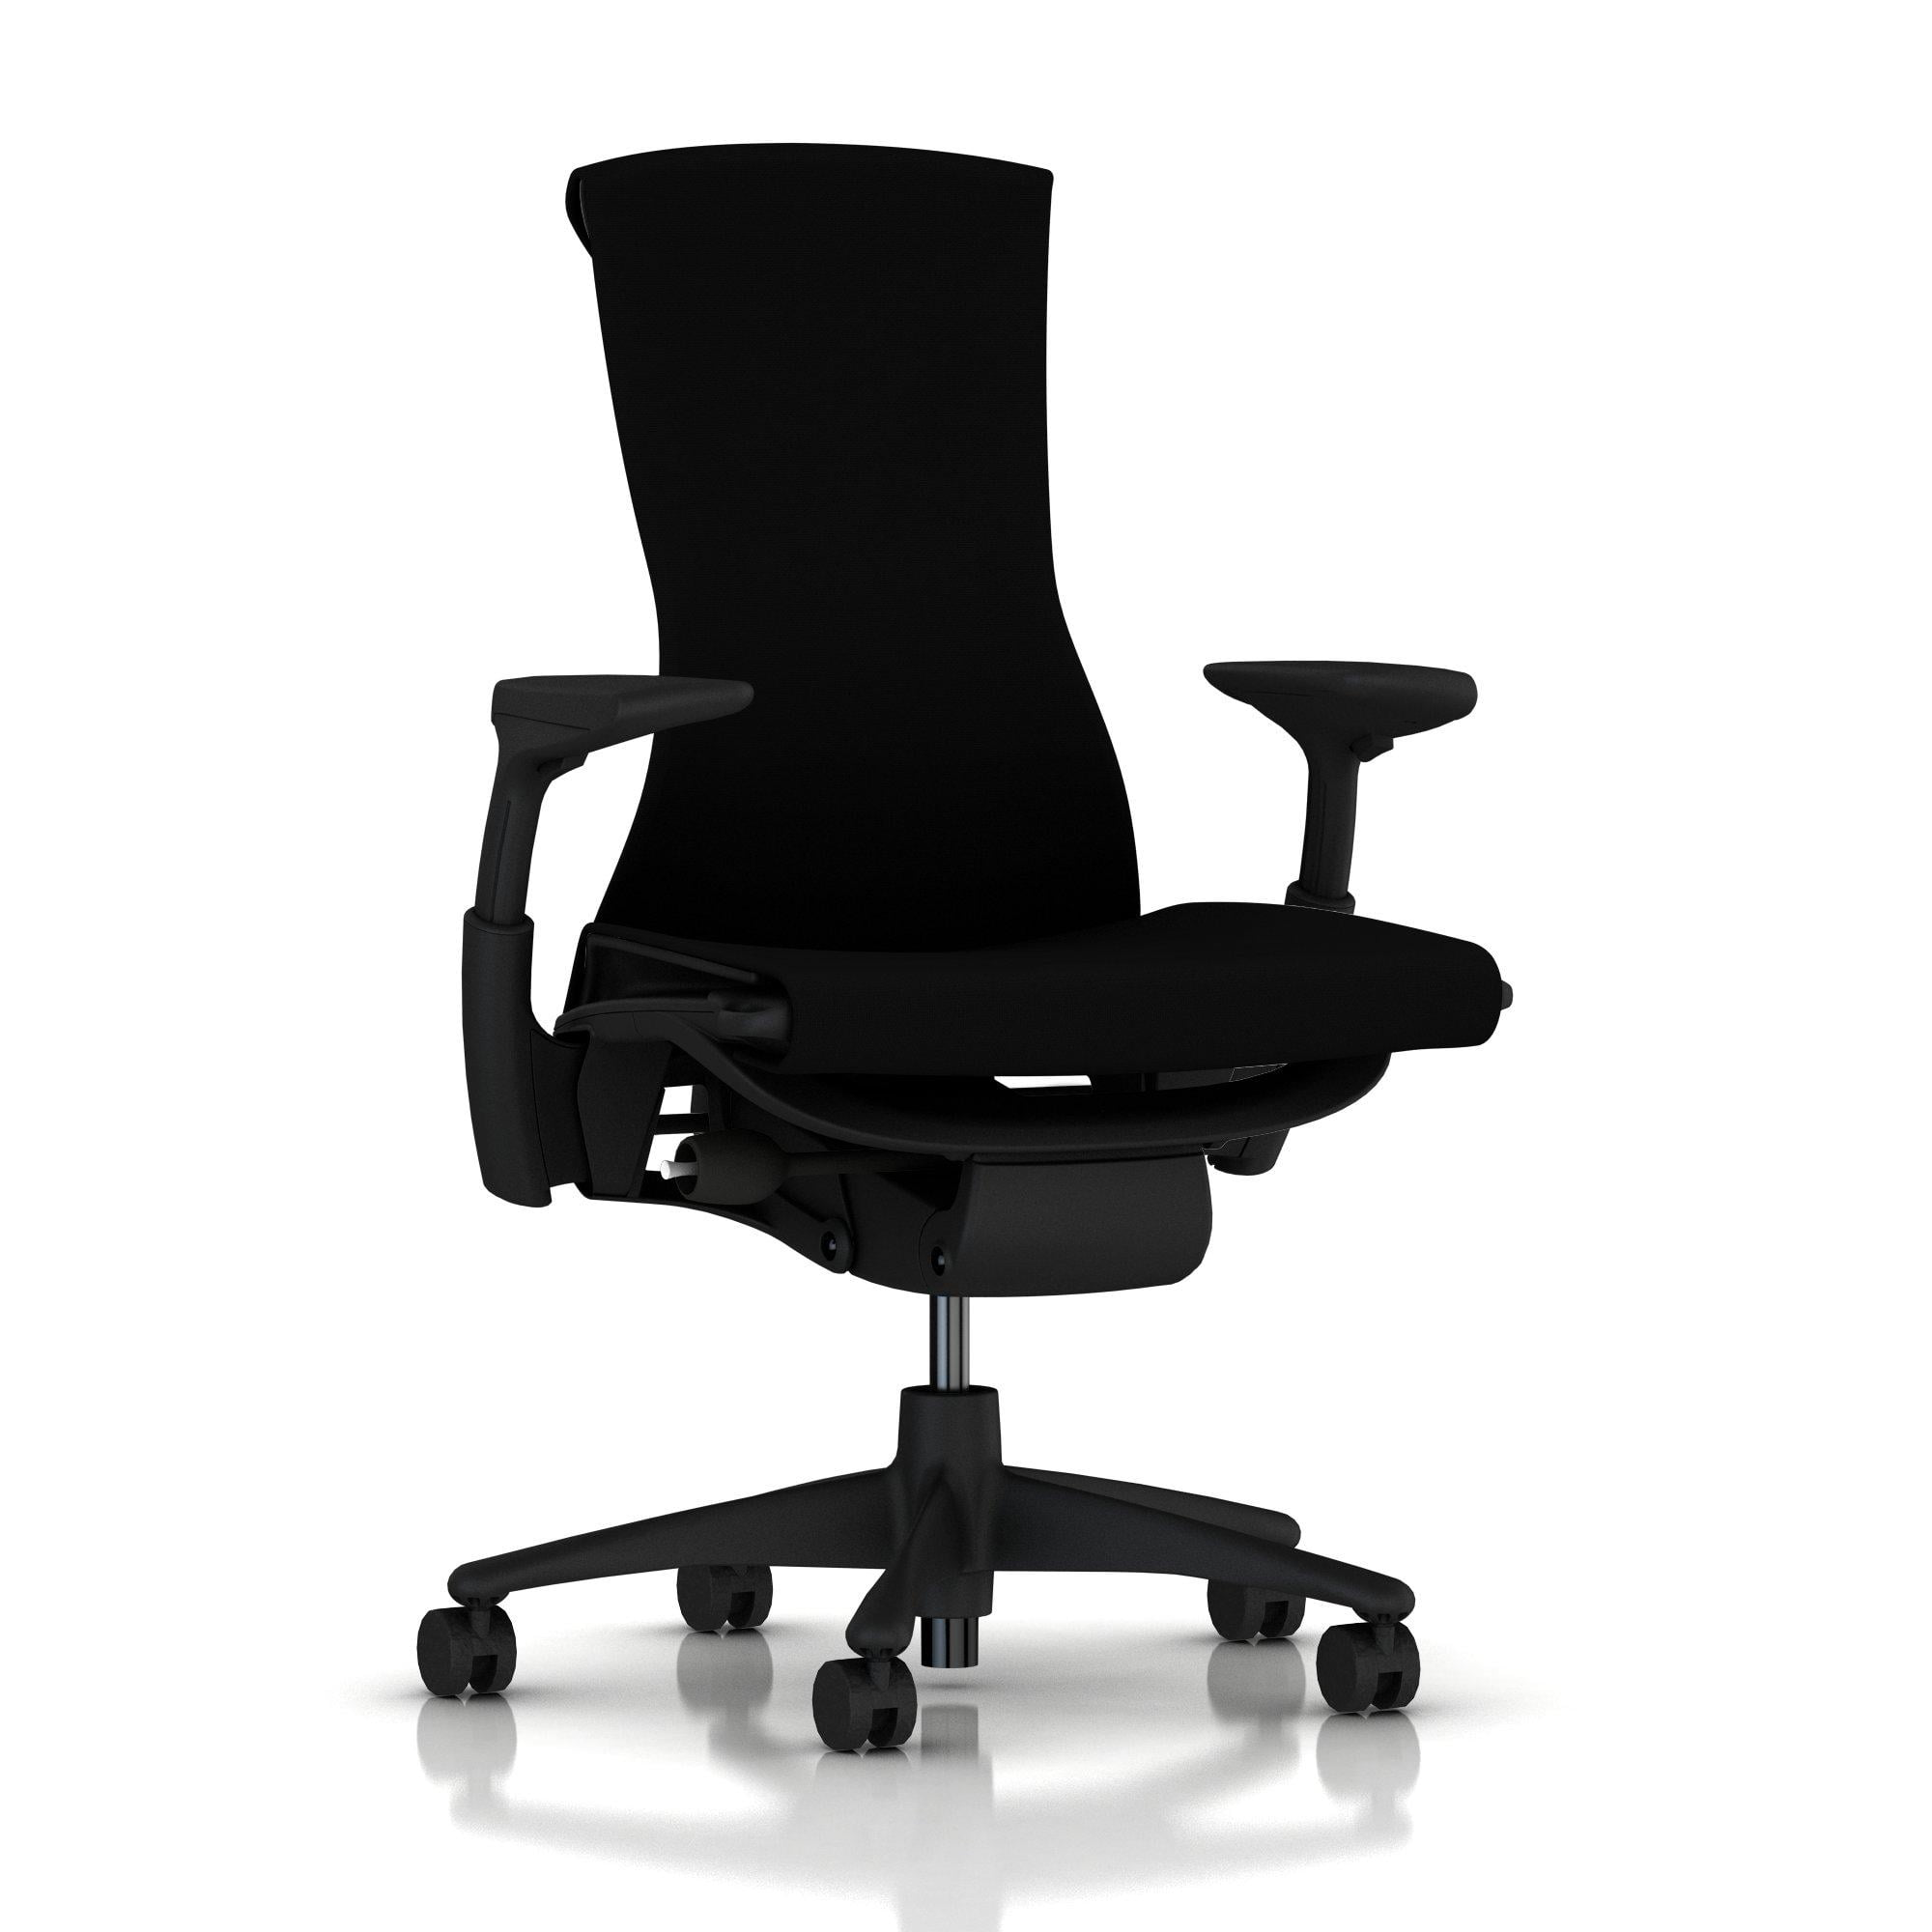 Der Embody chair in schwarz